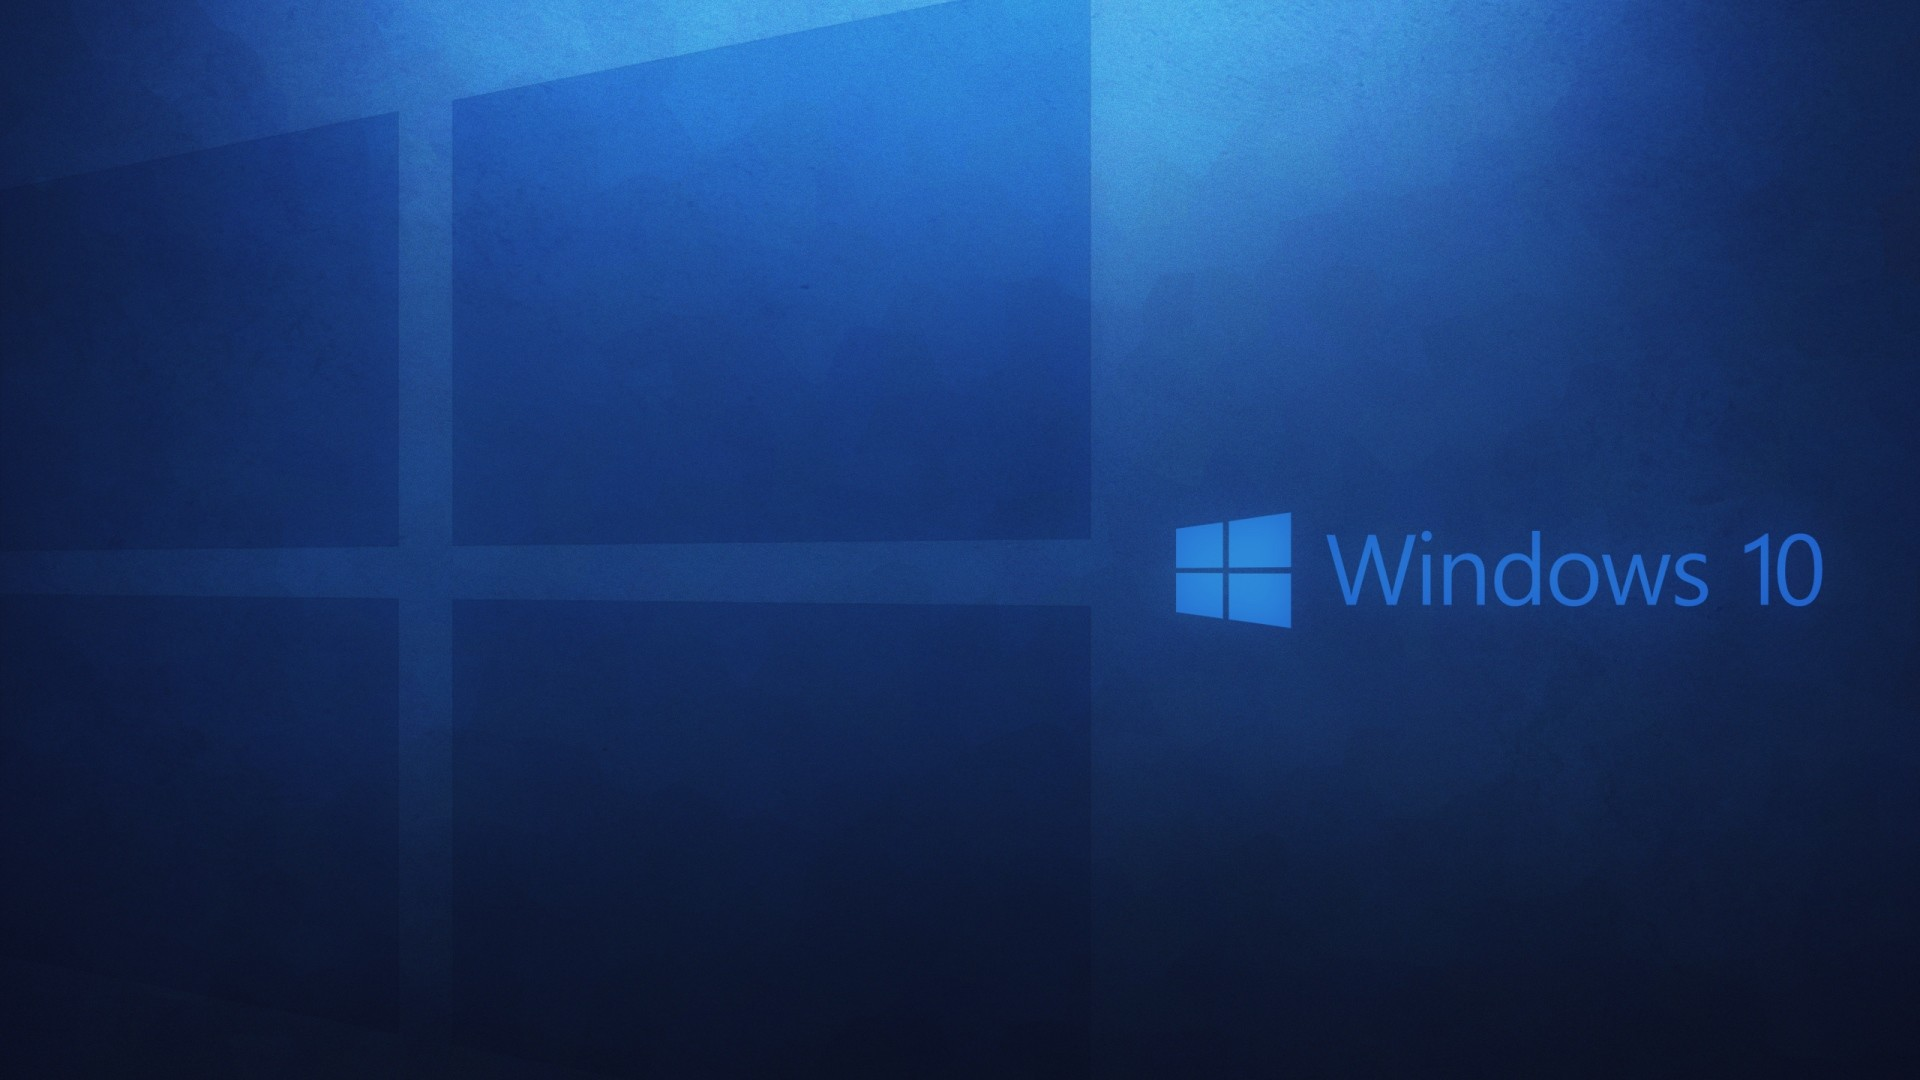 Windows 10 Wallpaper 1920x1080 75 Images